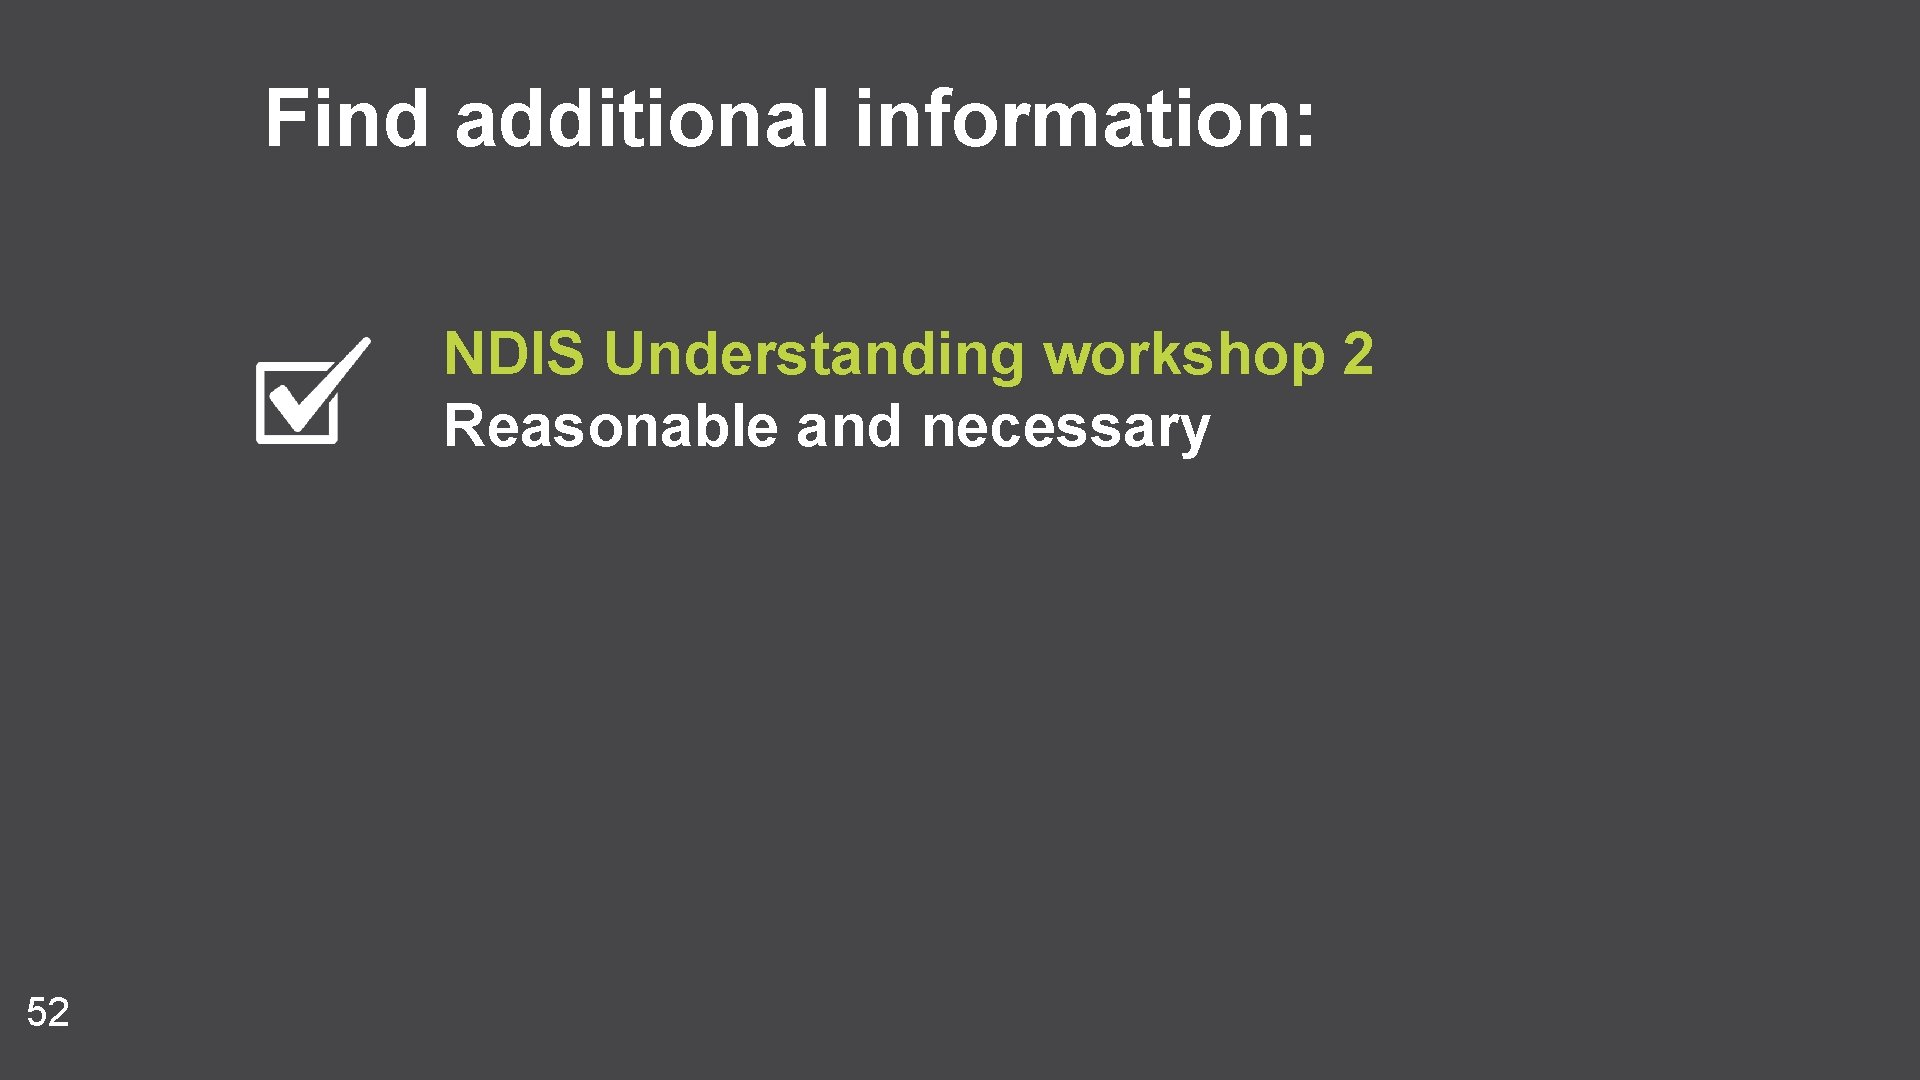 Find additional information: NDIS Understanding workshop 2 Reasonable and necessary 52